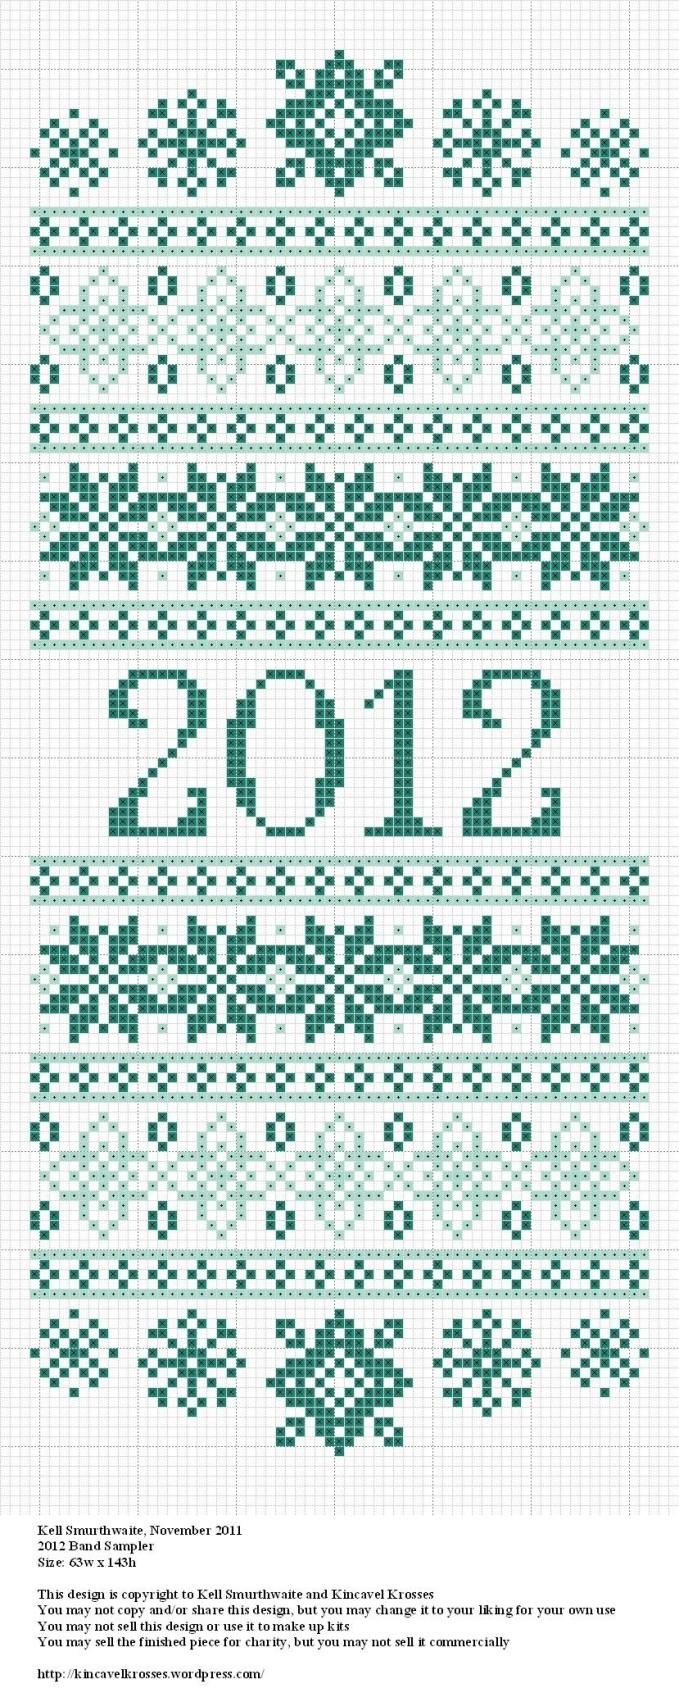 pretty 2012 samplerCrosses Stitches Embroidery, 2012 Crosses, 2012 Sampler, 2012 Samples, Crosses Stitches Charts, 2012 Band, Fair Isle, Kincavel Kross, Band Sampler